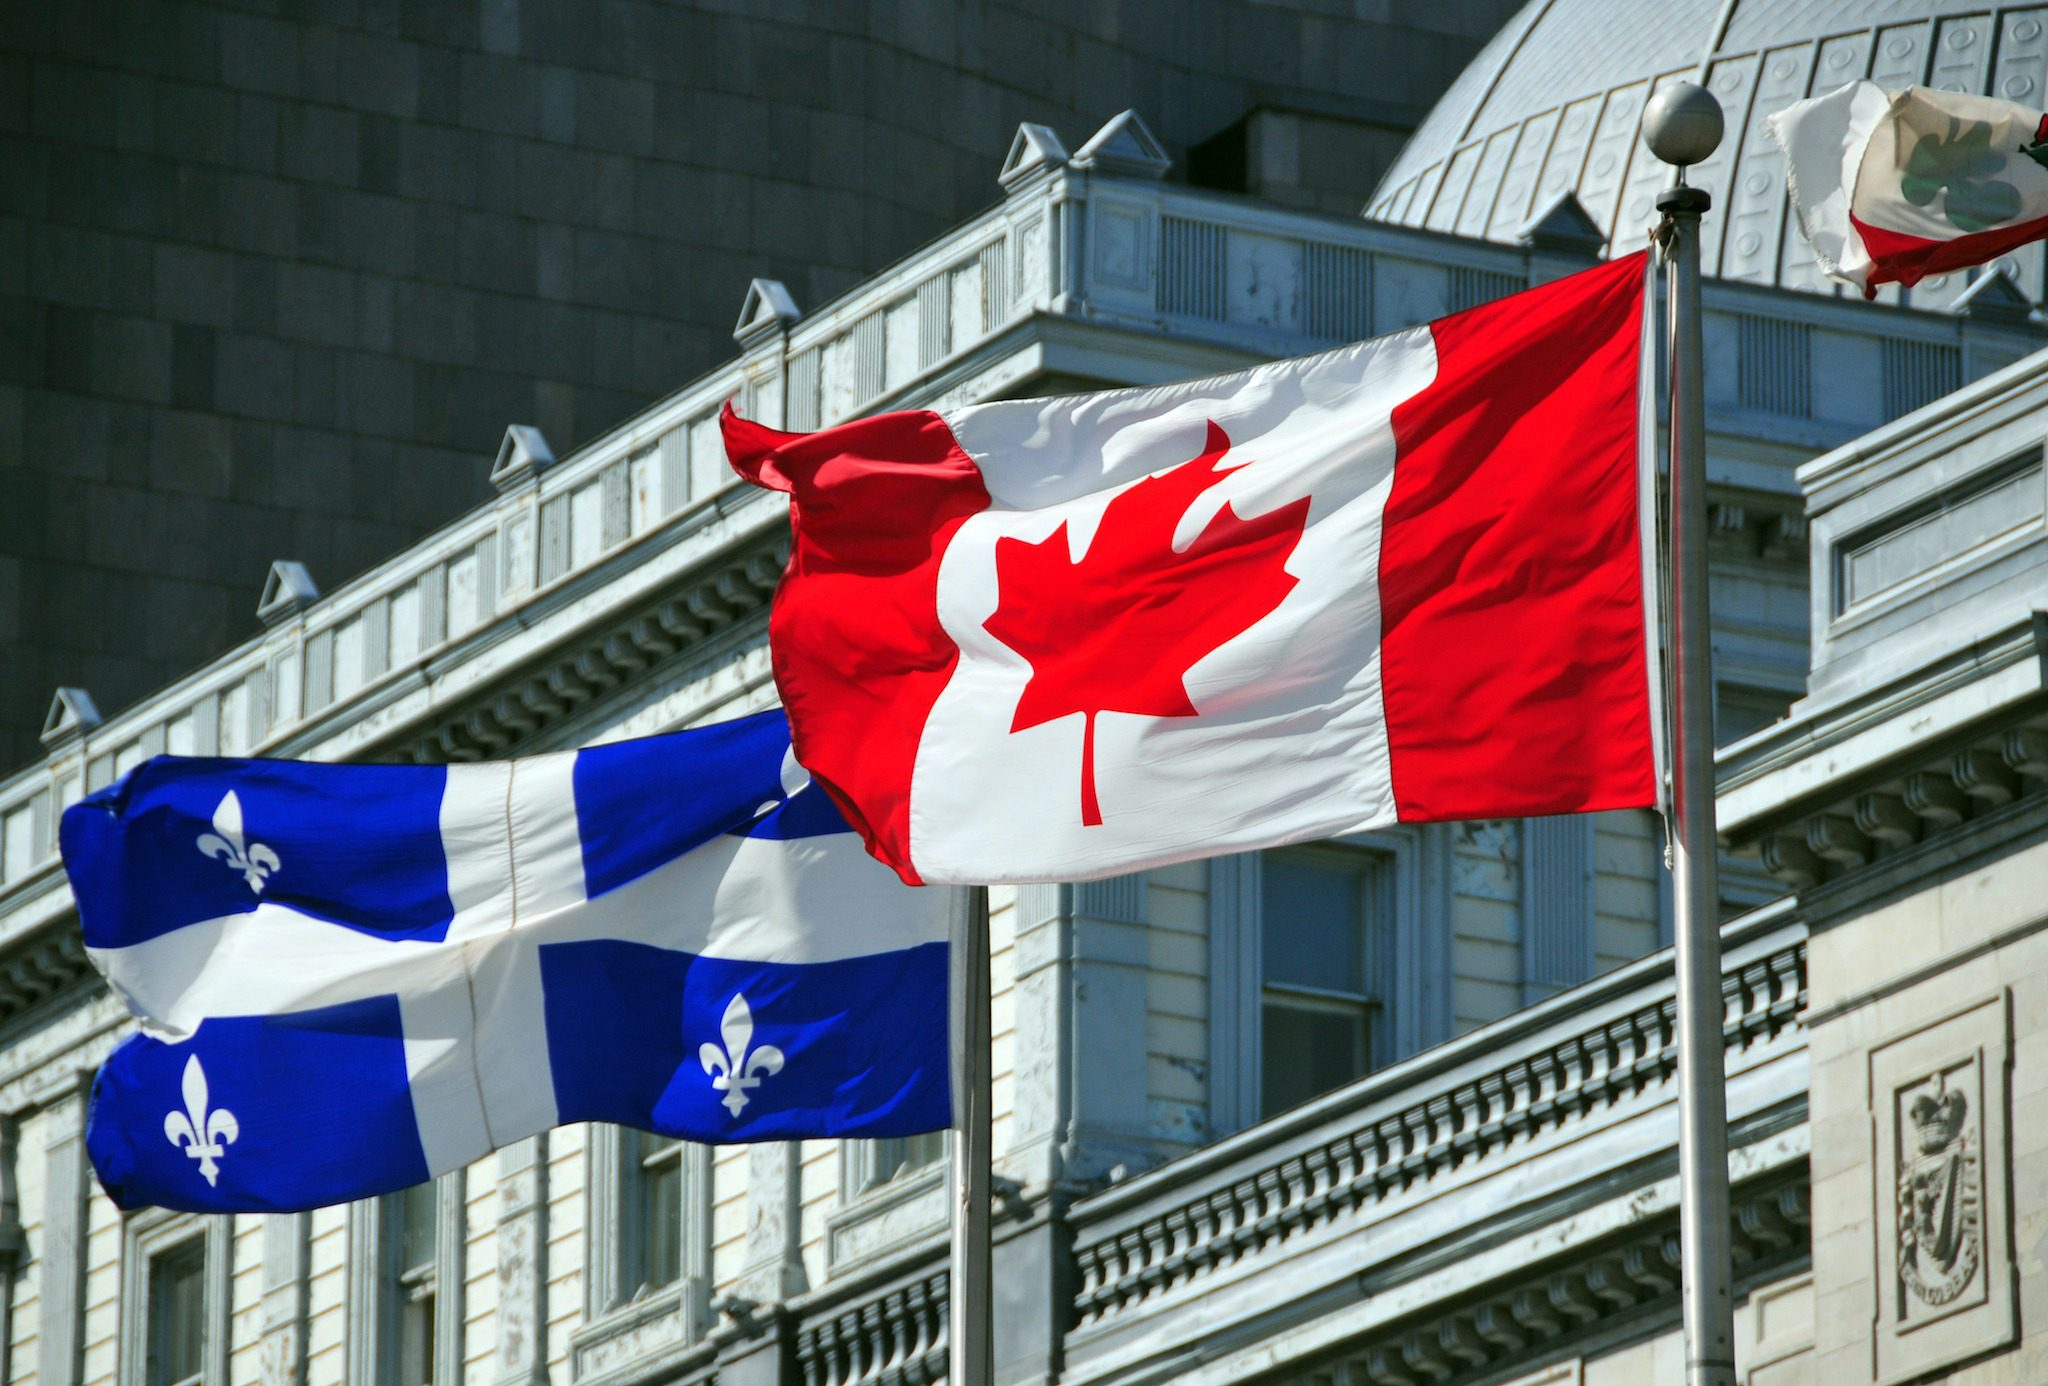 Montreal, Quebec, Canada: Canadian and Quebecer flags in front of the old Palace of Justice - Vieux palais de justice - Rue Notre Dame - Vieux-Montr?al - photo by M.Torres